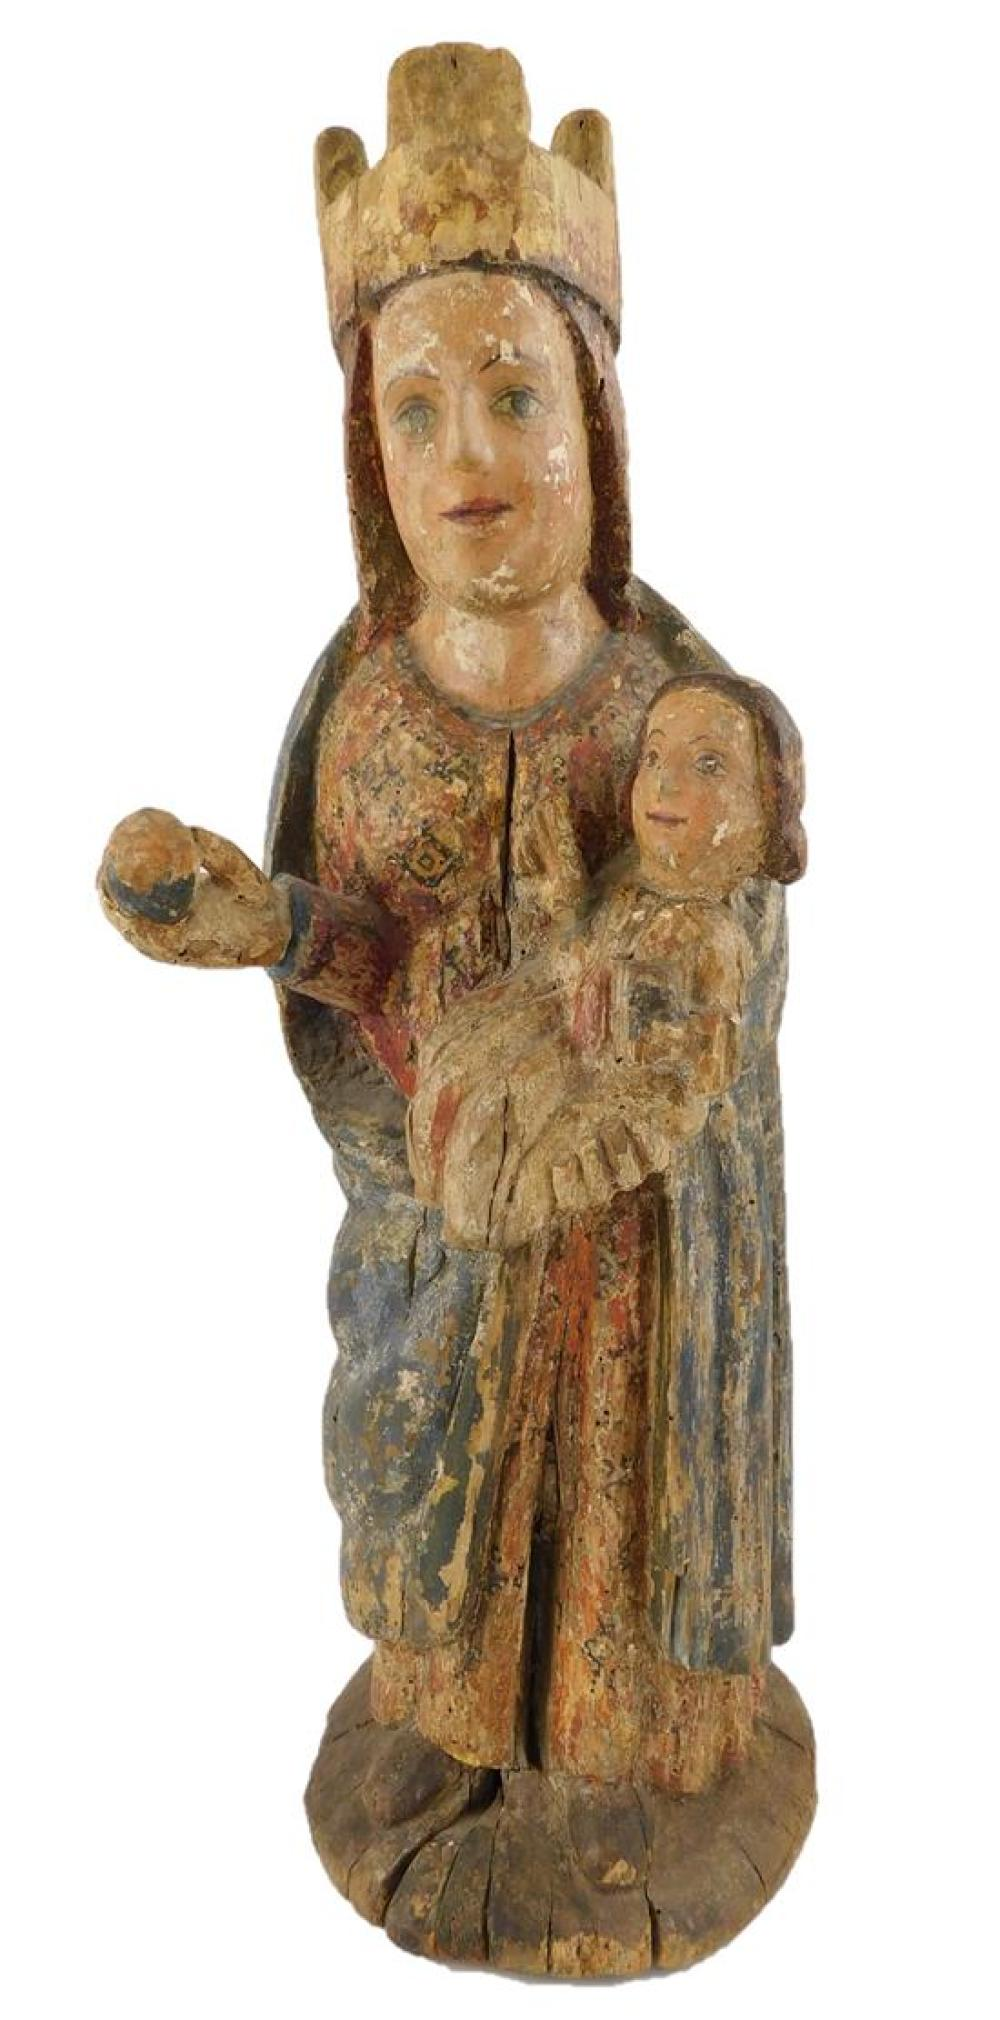 Virgin and Child, possibly Spanish, medieval, sculpture, wood, traces of polychrome and gilding, devotional sculpture, condition: he...